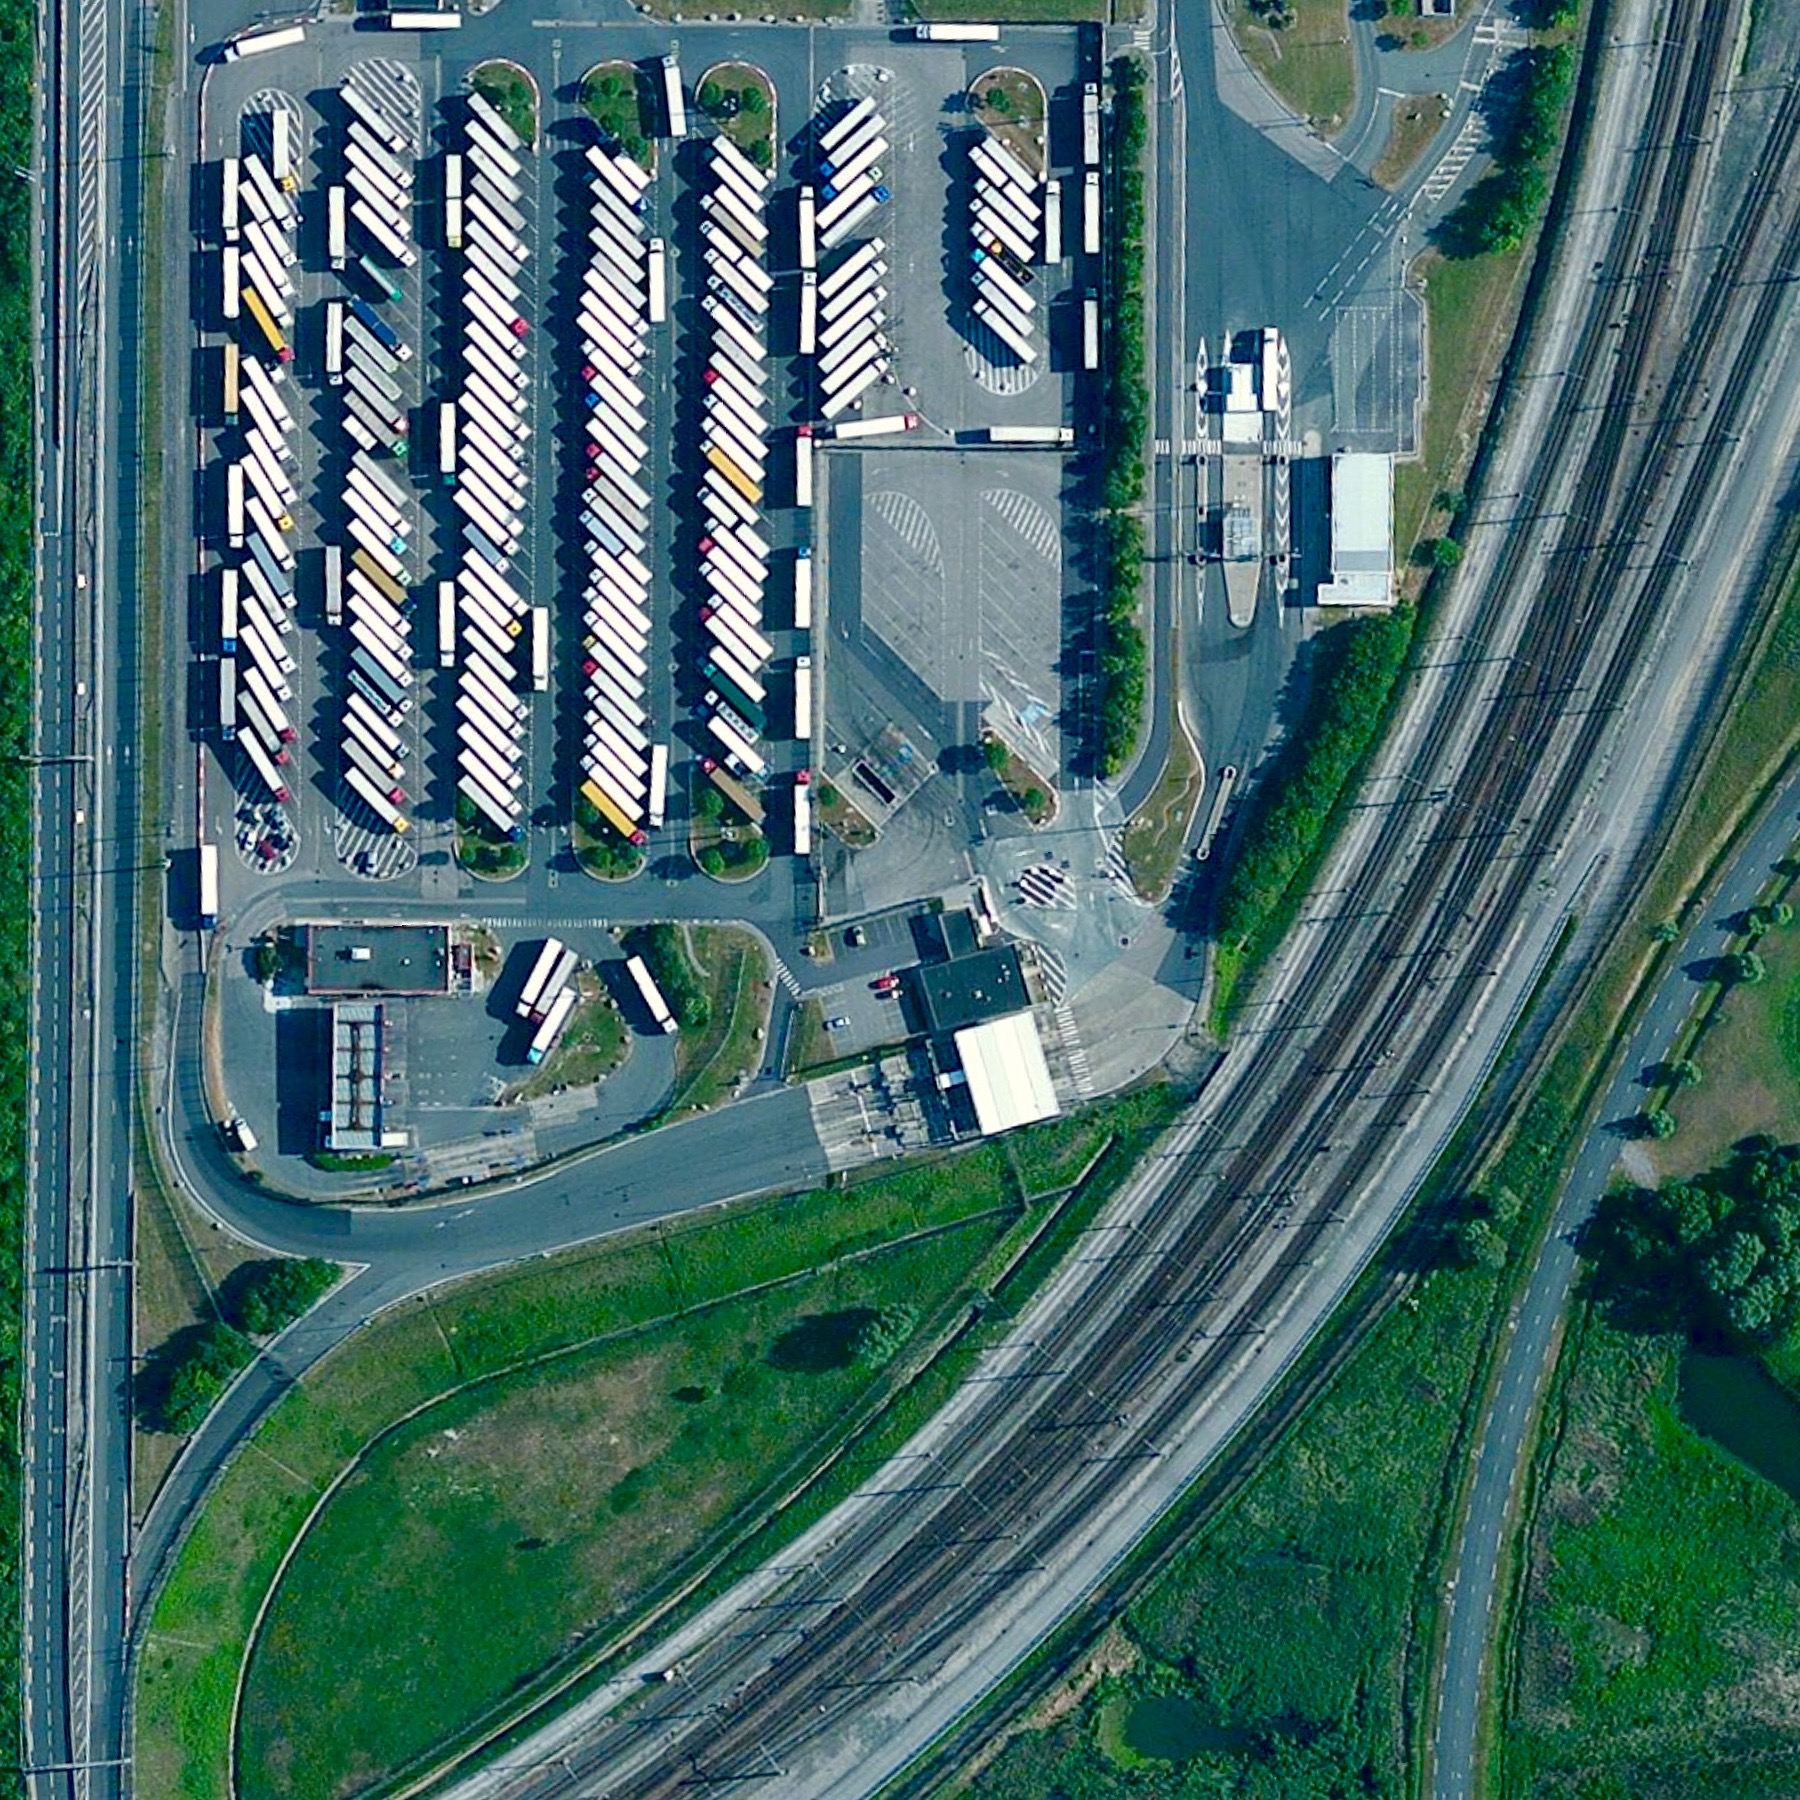 7/29/2015  Trucks at  Channel Tunnel   Calais, France  50.931745288°, 1.824167808°    Trucks sit by the entrance of the Channel Tunnel in Calais, France.  Last night more than 2,200 migrants attempted to break into the tunnel entrance  in an effort to get to Britain - 31.4 miles away via the underwater passage. This is the latest incident in an ongoing crisis in Europe where an estimated 100,000 migrants have entered the continent to flee violence and poverty in neighboring regions.